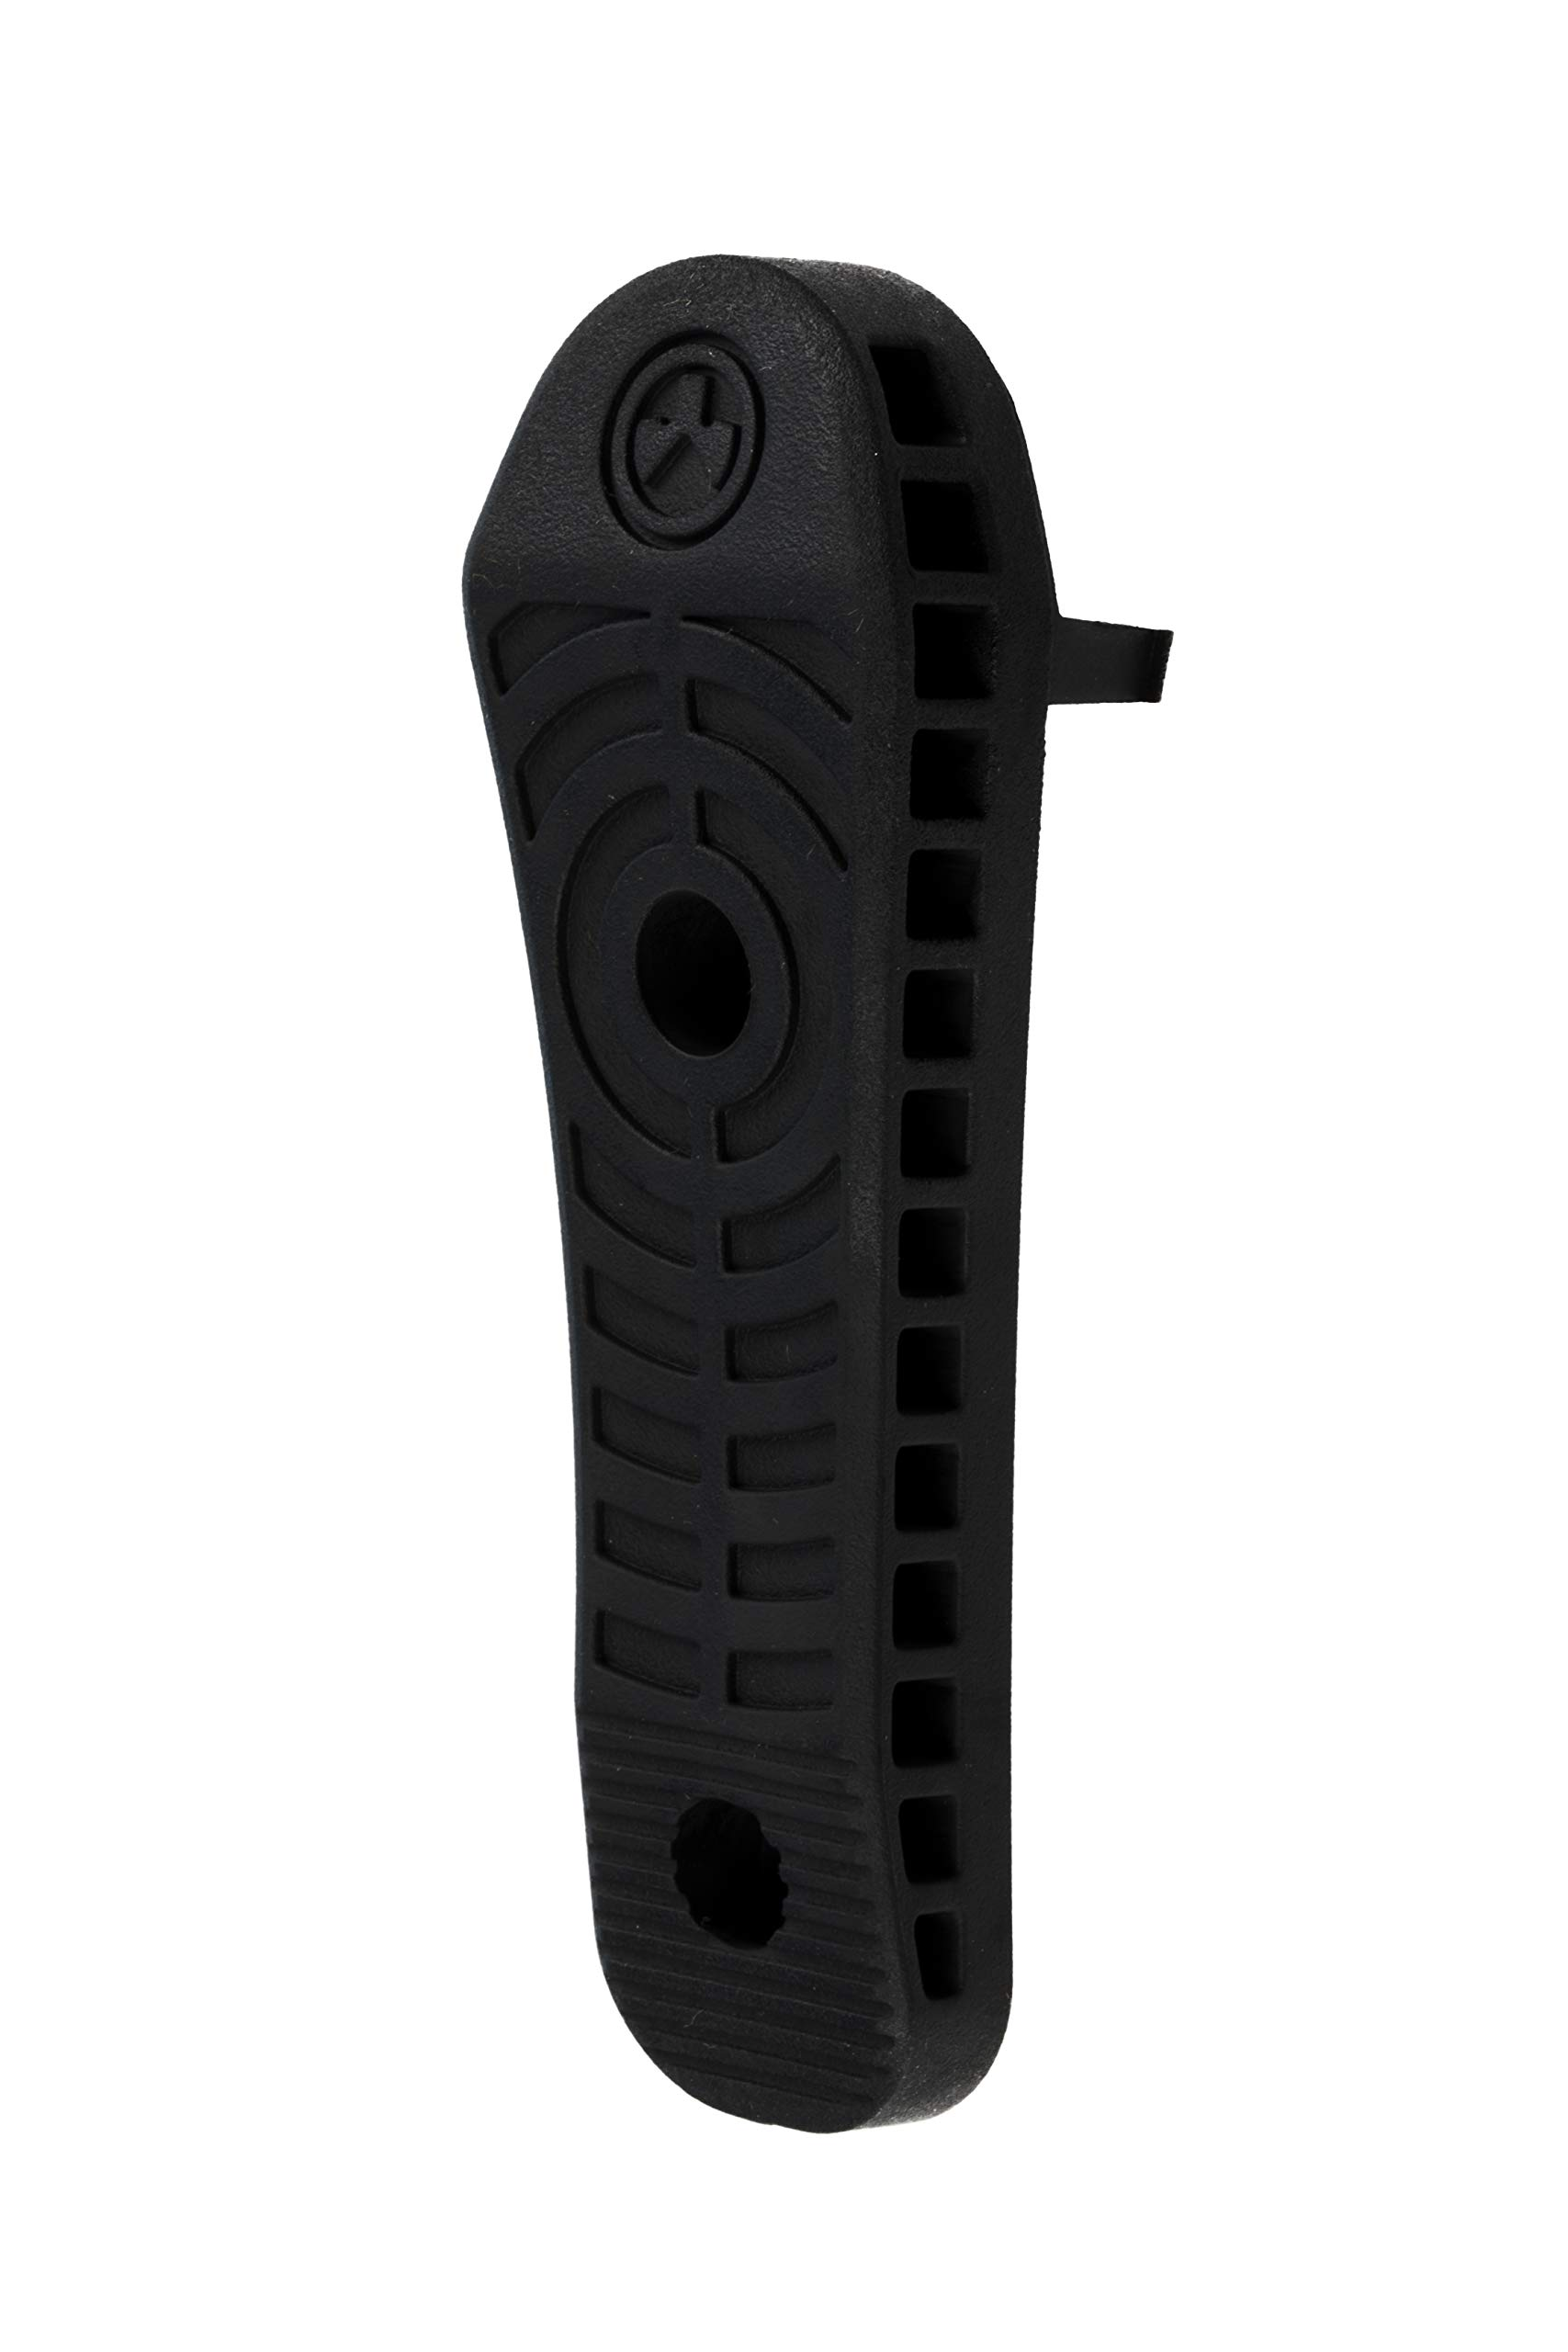 Magpul Extended Rubber Butt Pad, 0.70''